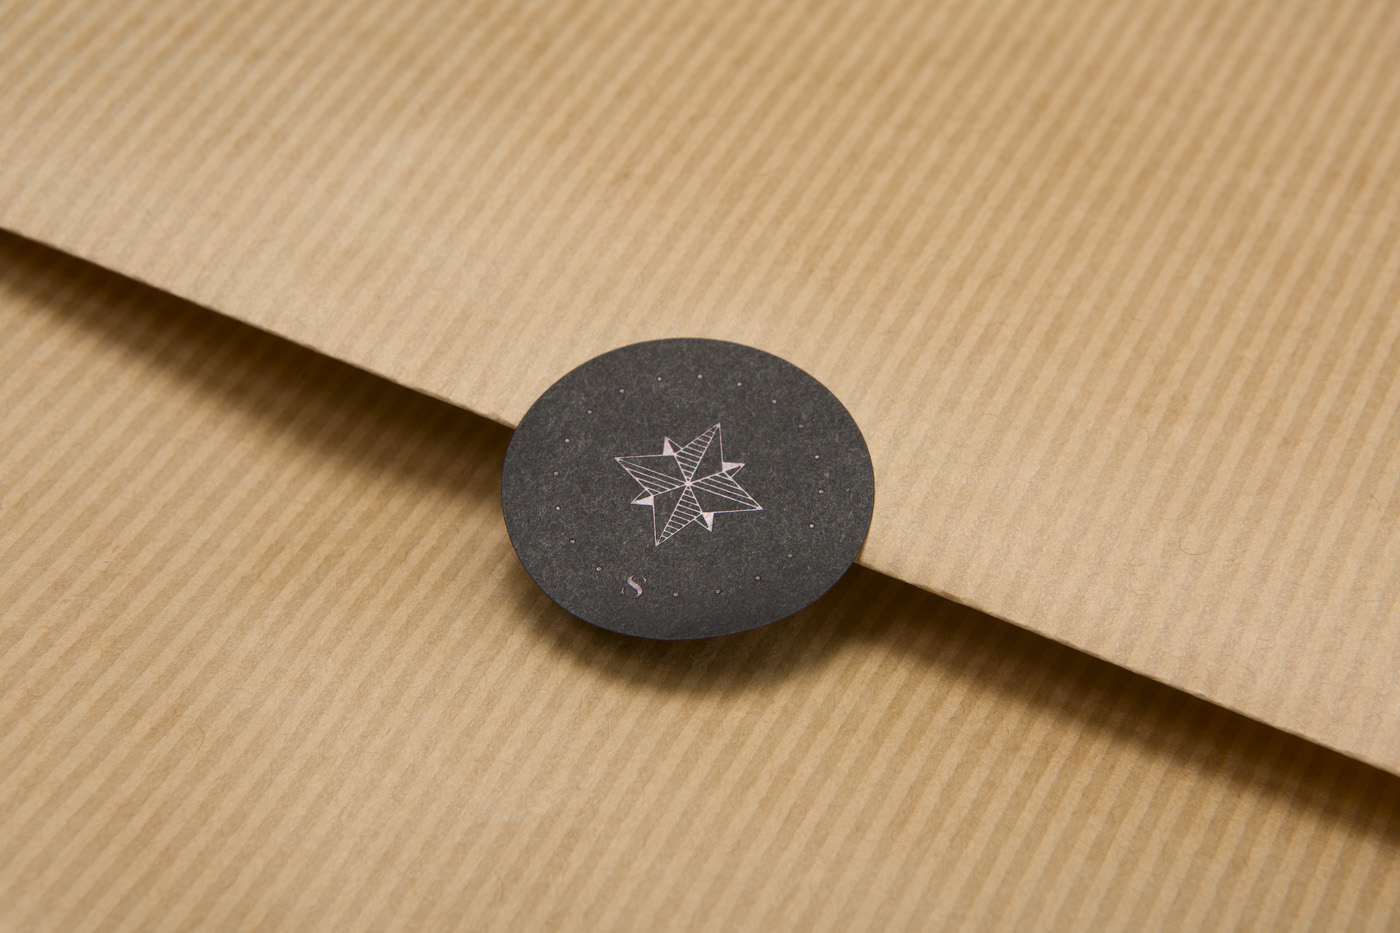 Foil stamped stickers for Shantanu Starick on Colorplan 1